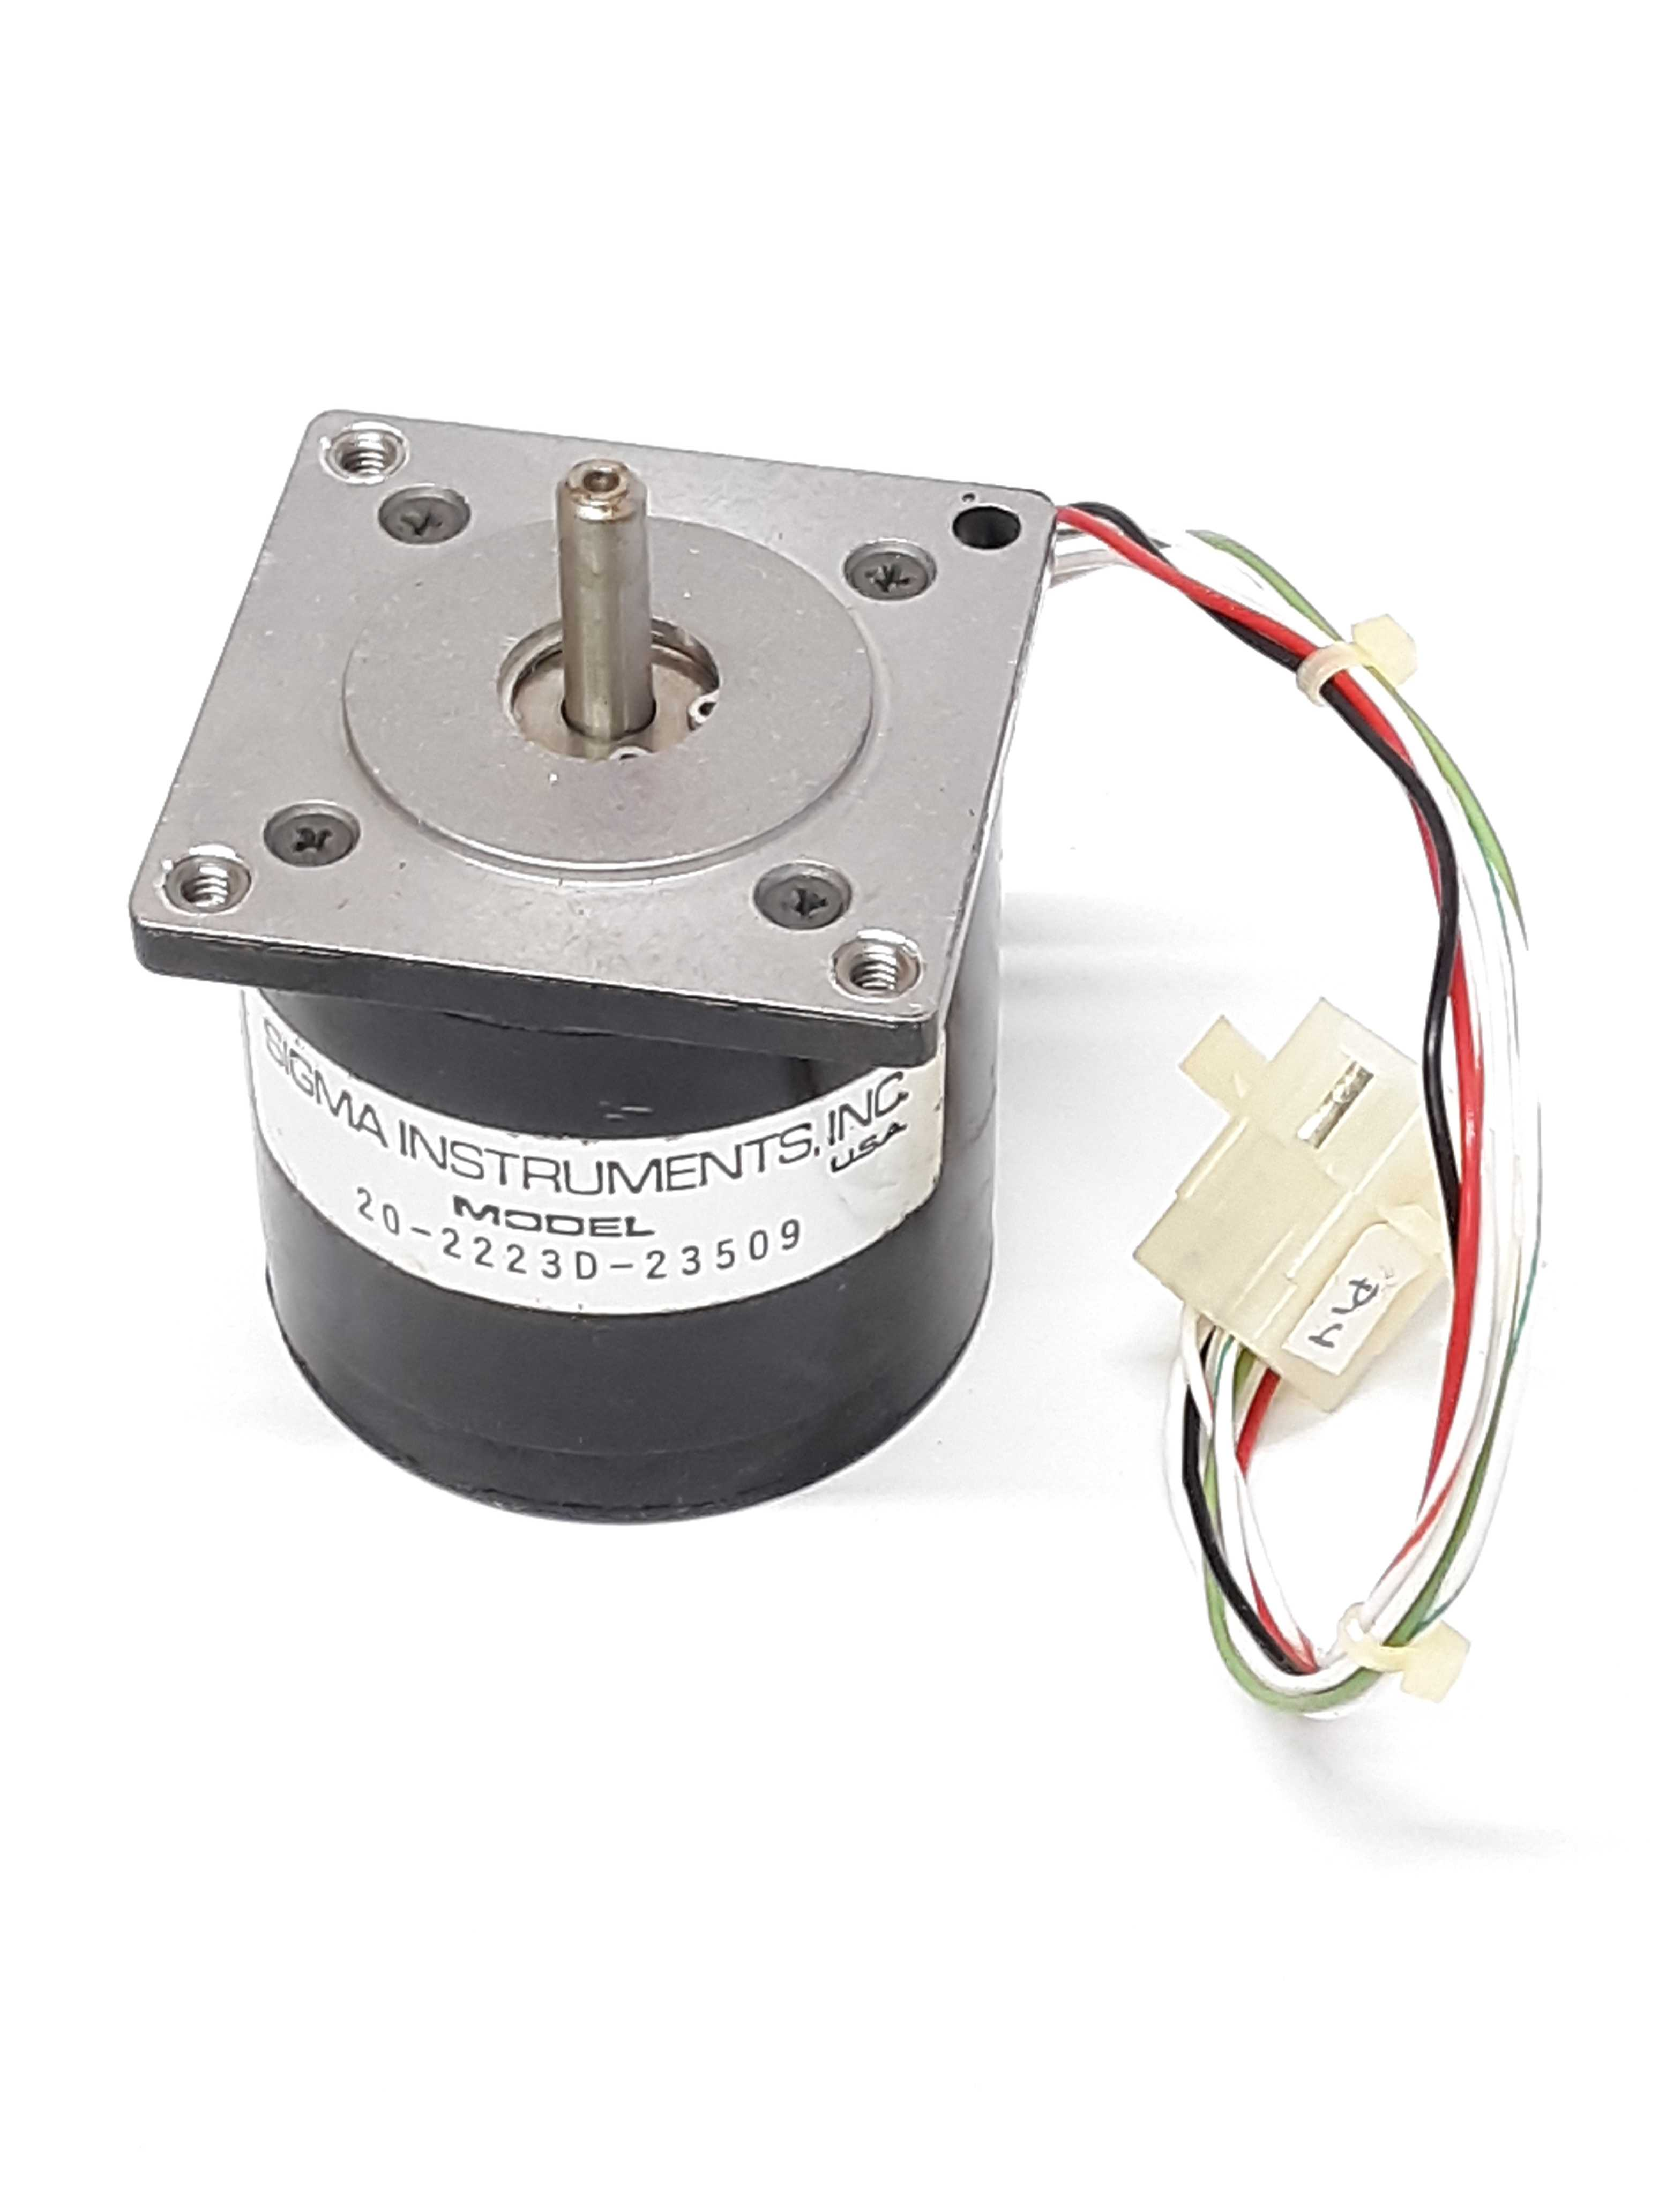 Sigma Instruments Inc. 20-2223D-23509 Stepper Motor 1/4